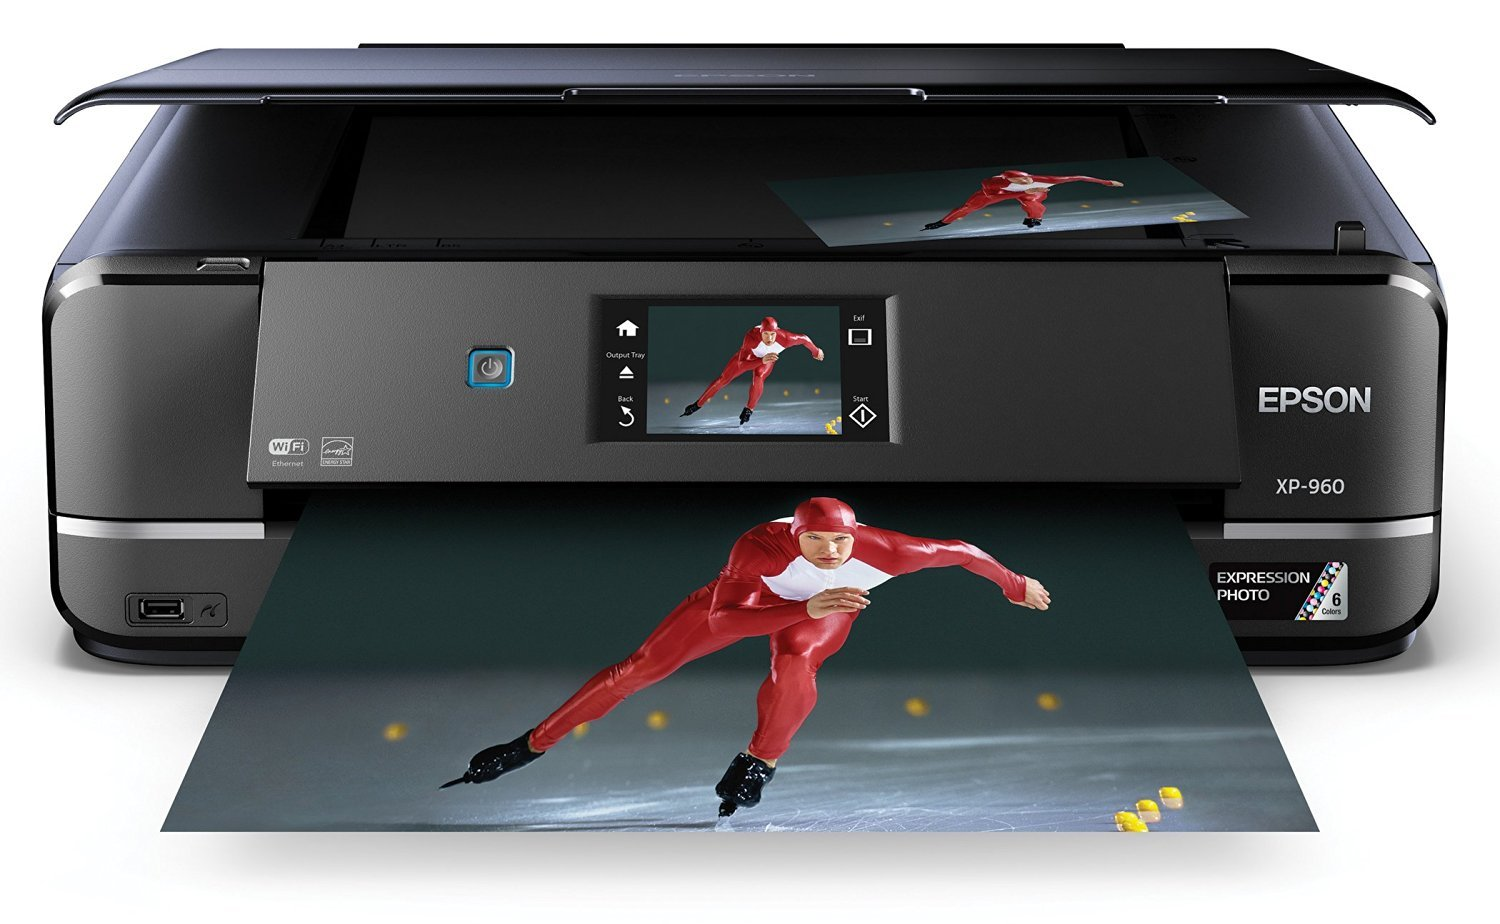 epson-expression-photo-xp-960-photo-printer